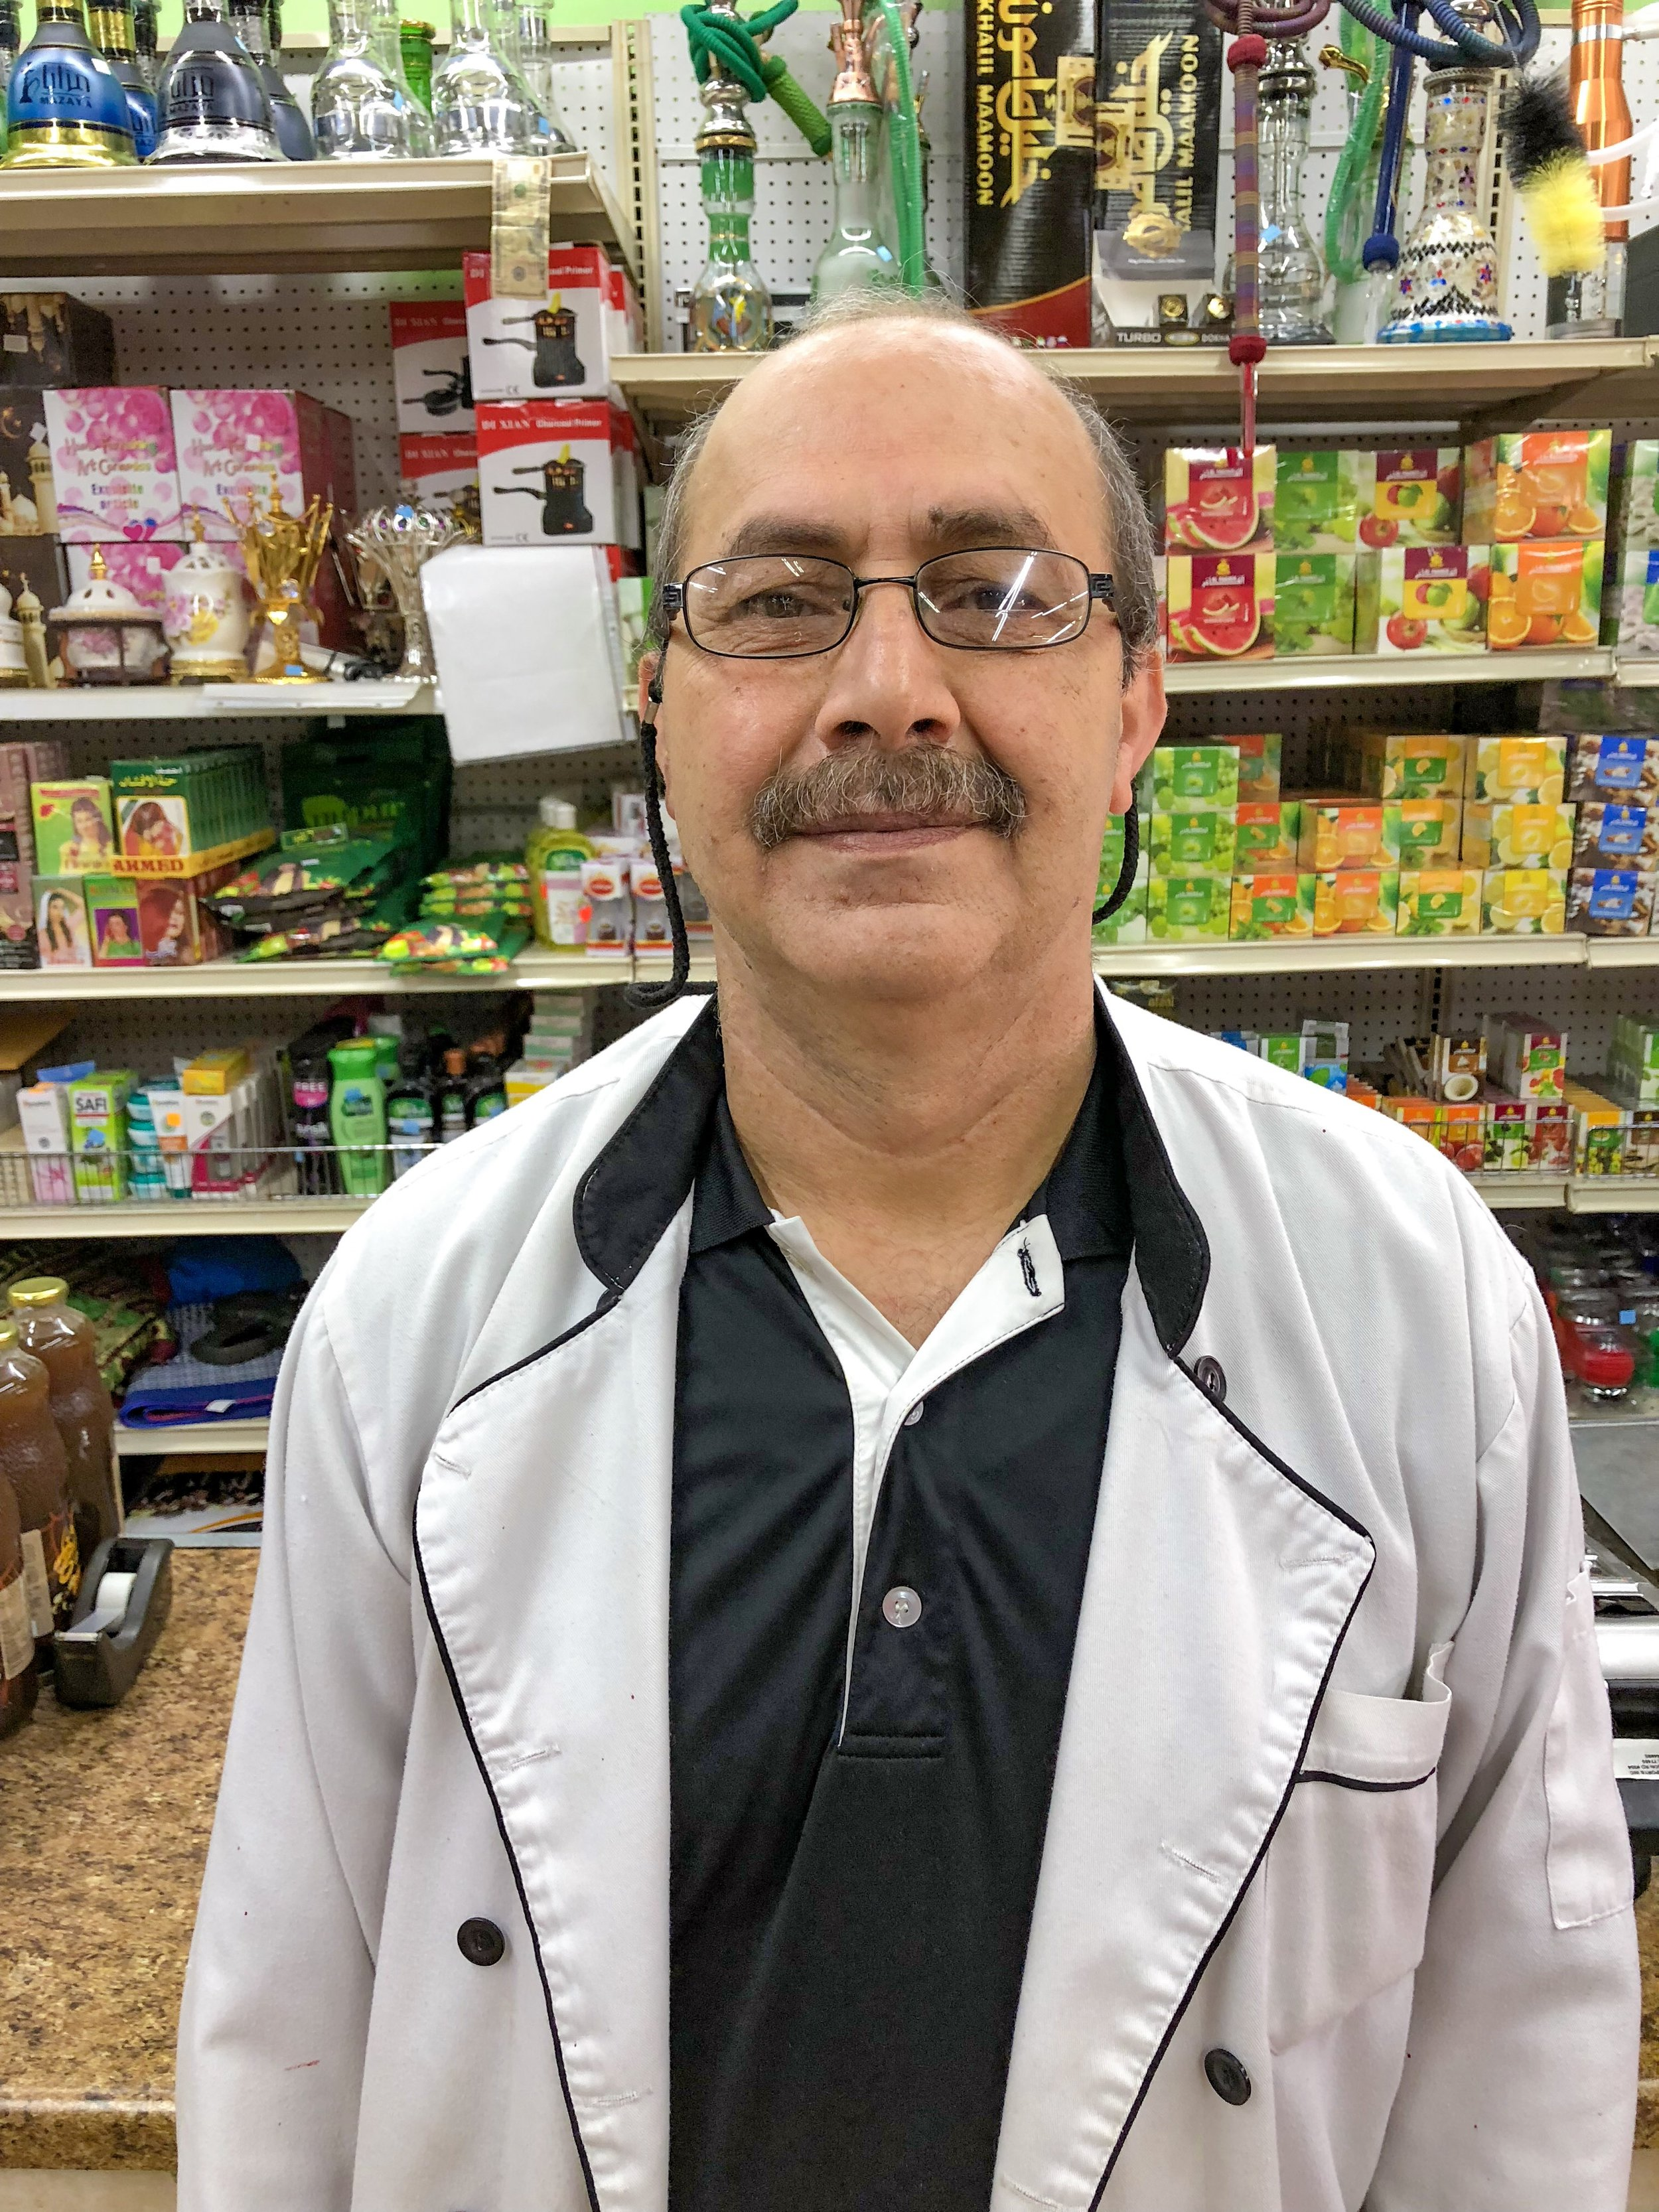 Naser Hittiny - Owner and operator of Alsafa grocery, and partner in Texas Halal Corp.